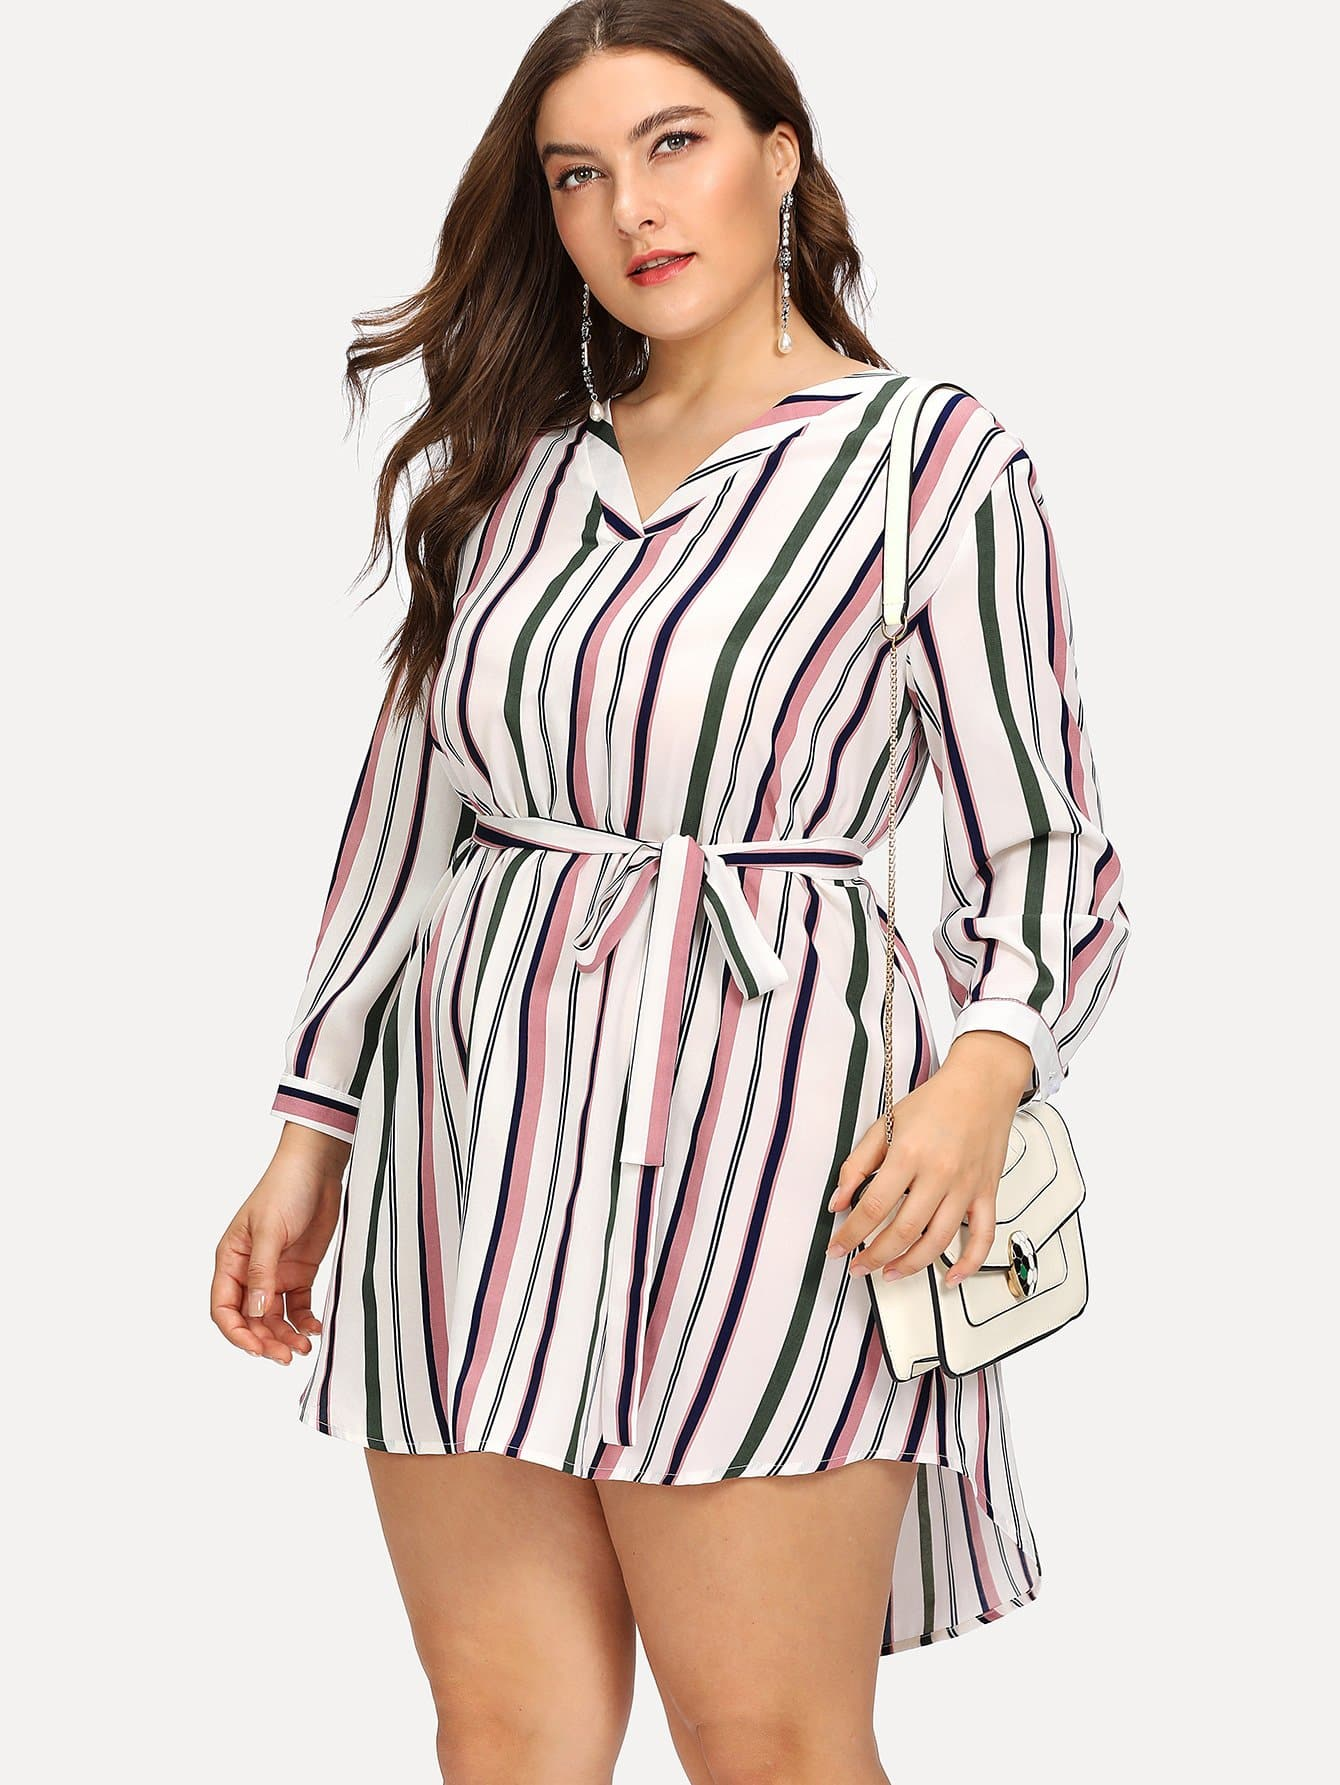 Vertical Striped Step Hem Dress олег евгеньевич кодола фёдор колычев – дитя эпохи